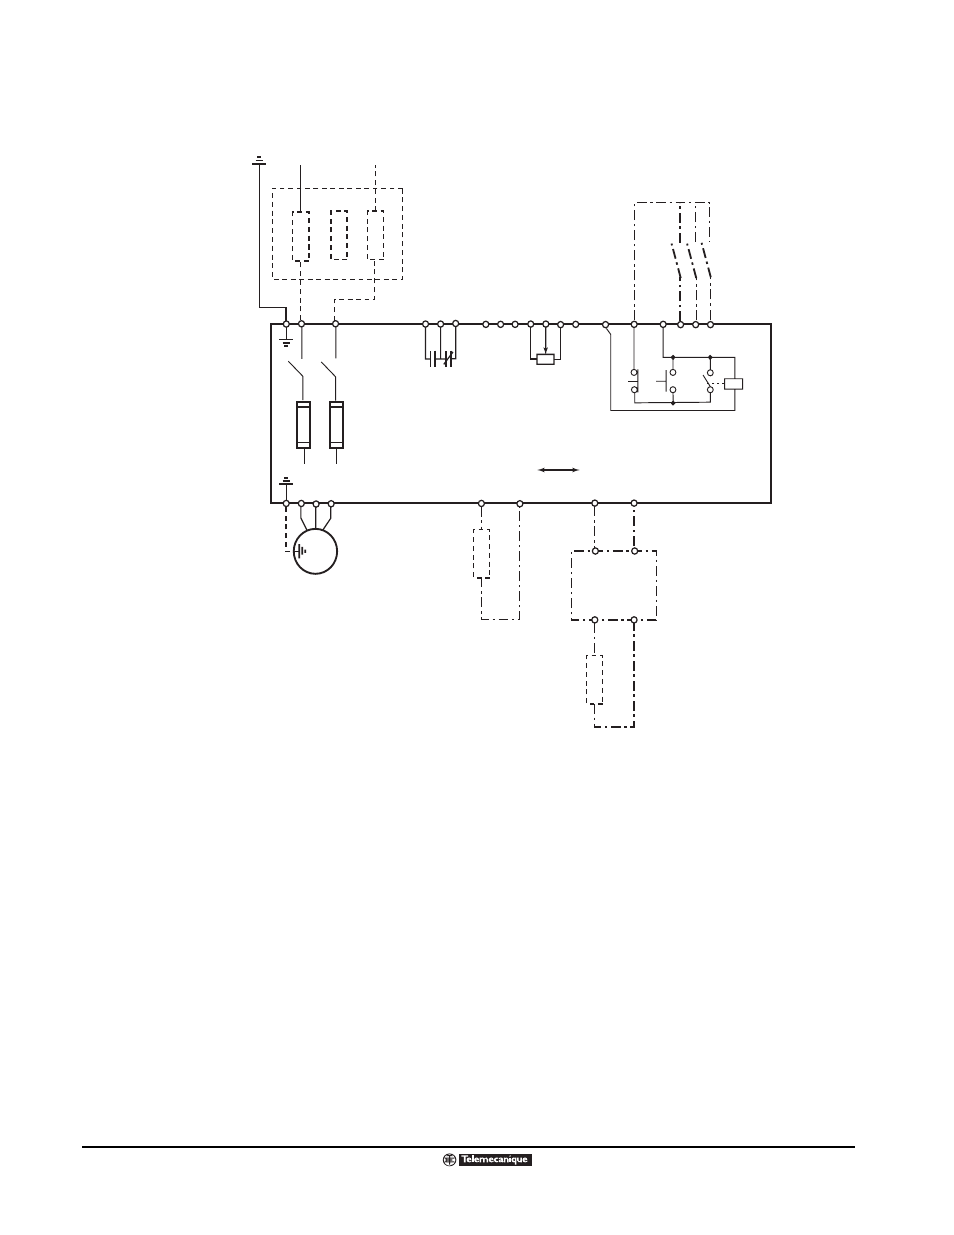 schneider electric altivar 58 trx page111 altivar, 58 trx ac drives, wiring recommendations schneider altivar 58 wiring diagram at edmiracle.co